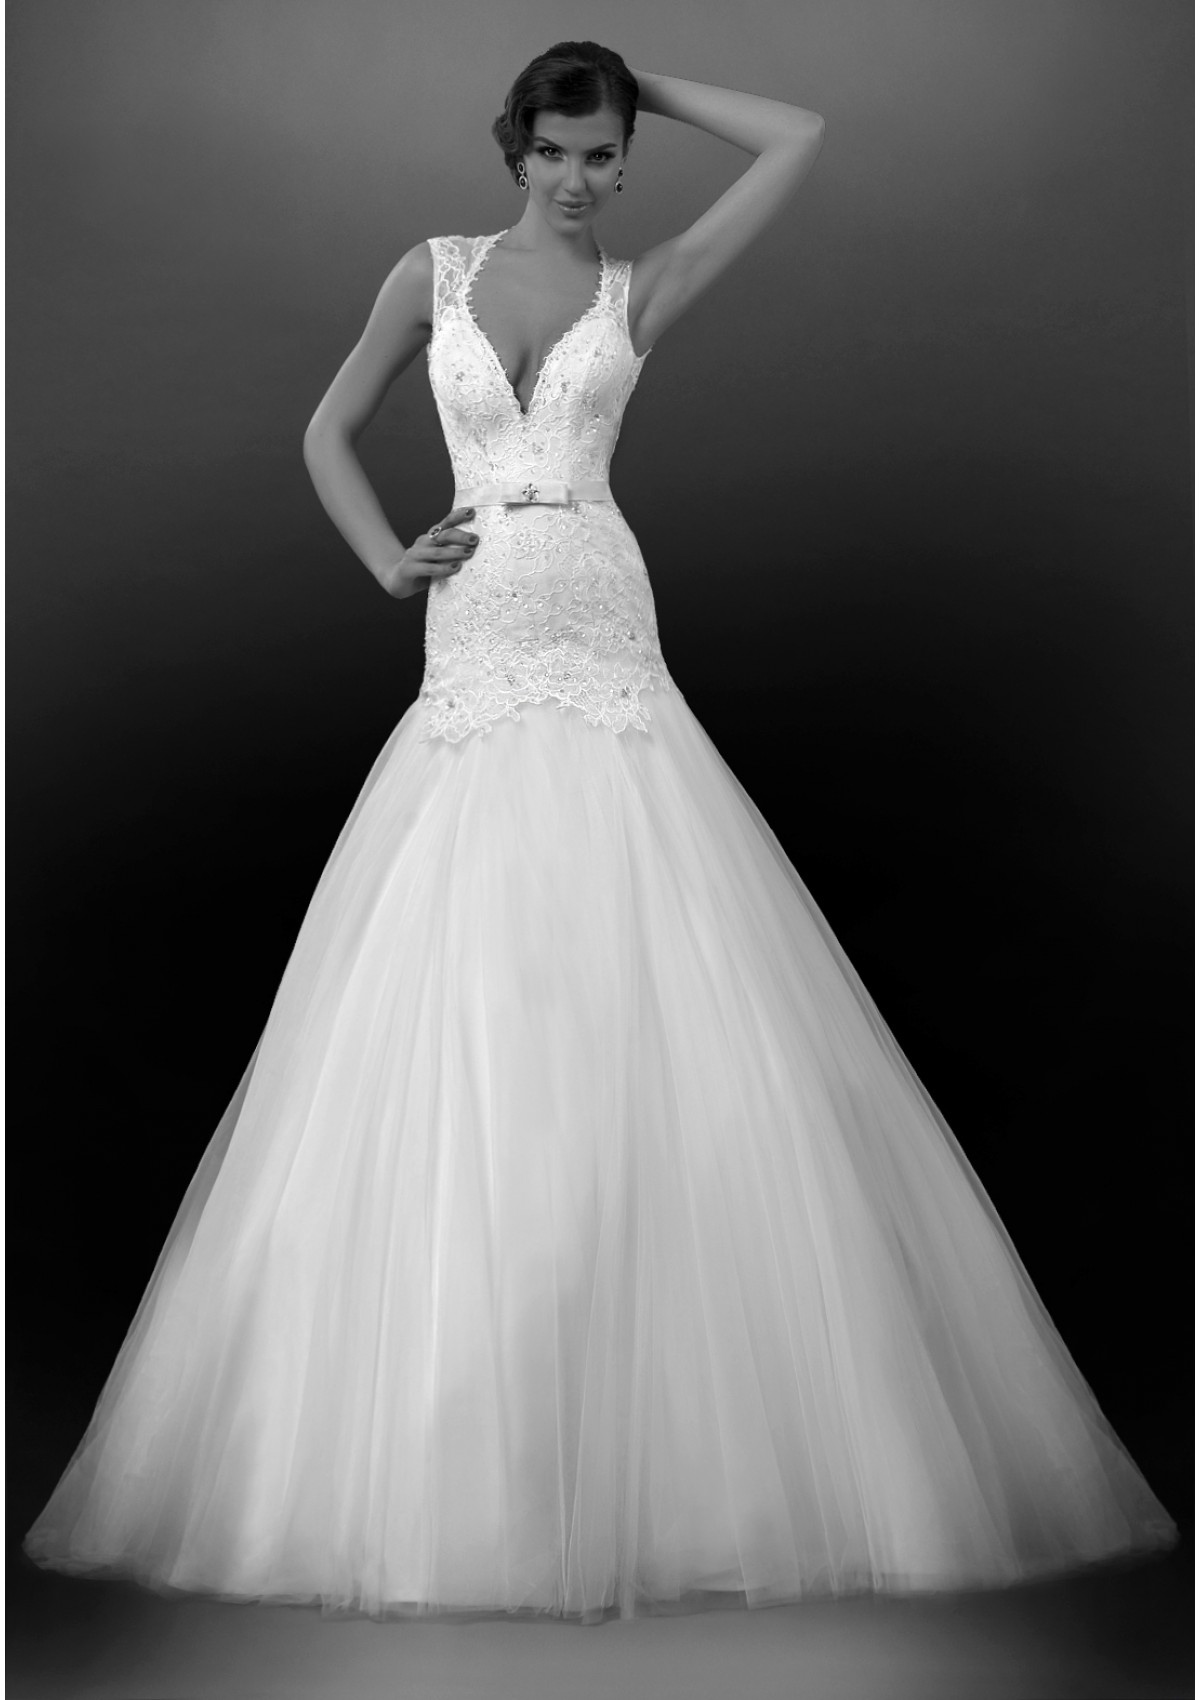 bien-savvy-wedding-dresses-11-08272014nz